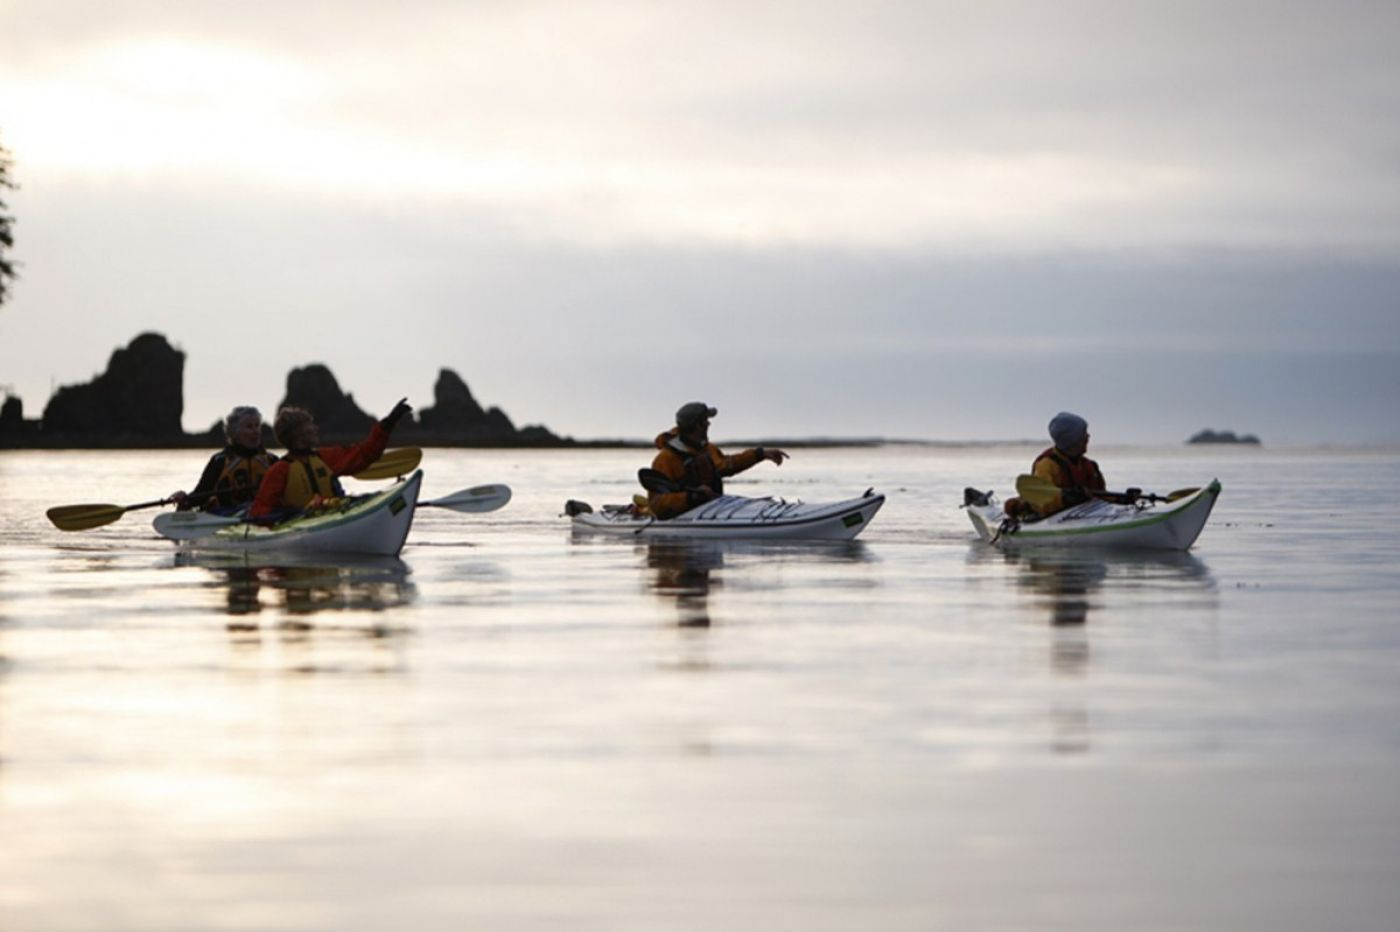 """<div id=""""tc-link""""><a href=""""https://www.westcoastexpeditions.com/"""" target=""""_blank"""">West Coast Expeditions</a></div>"""